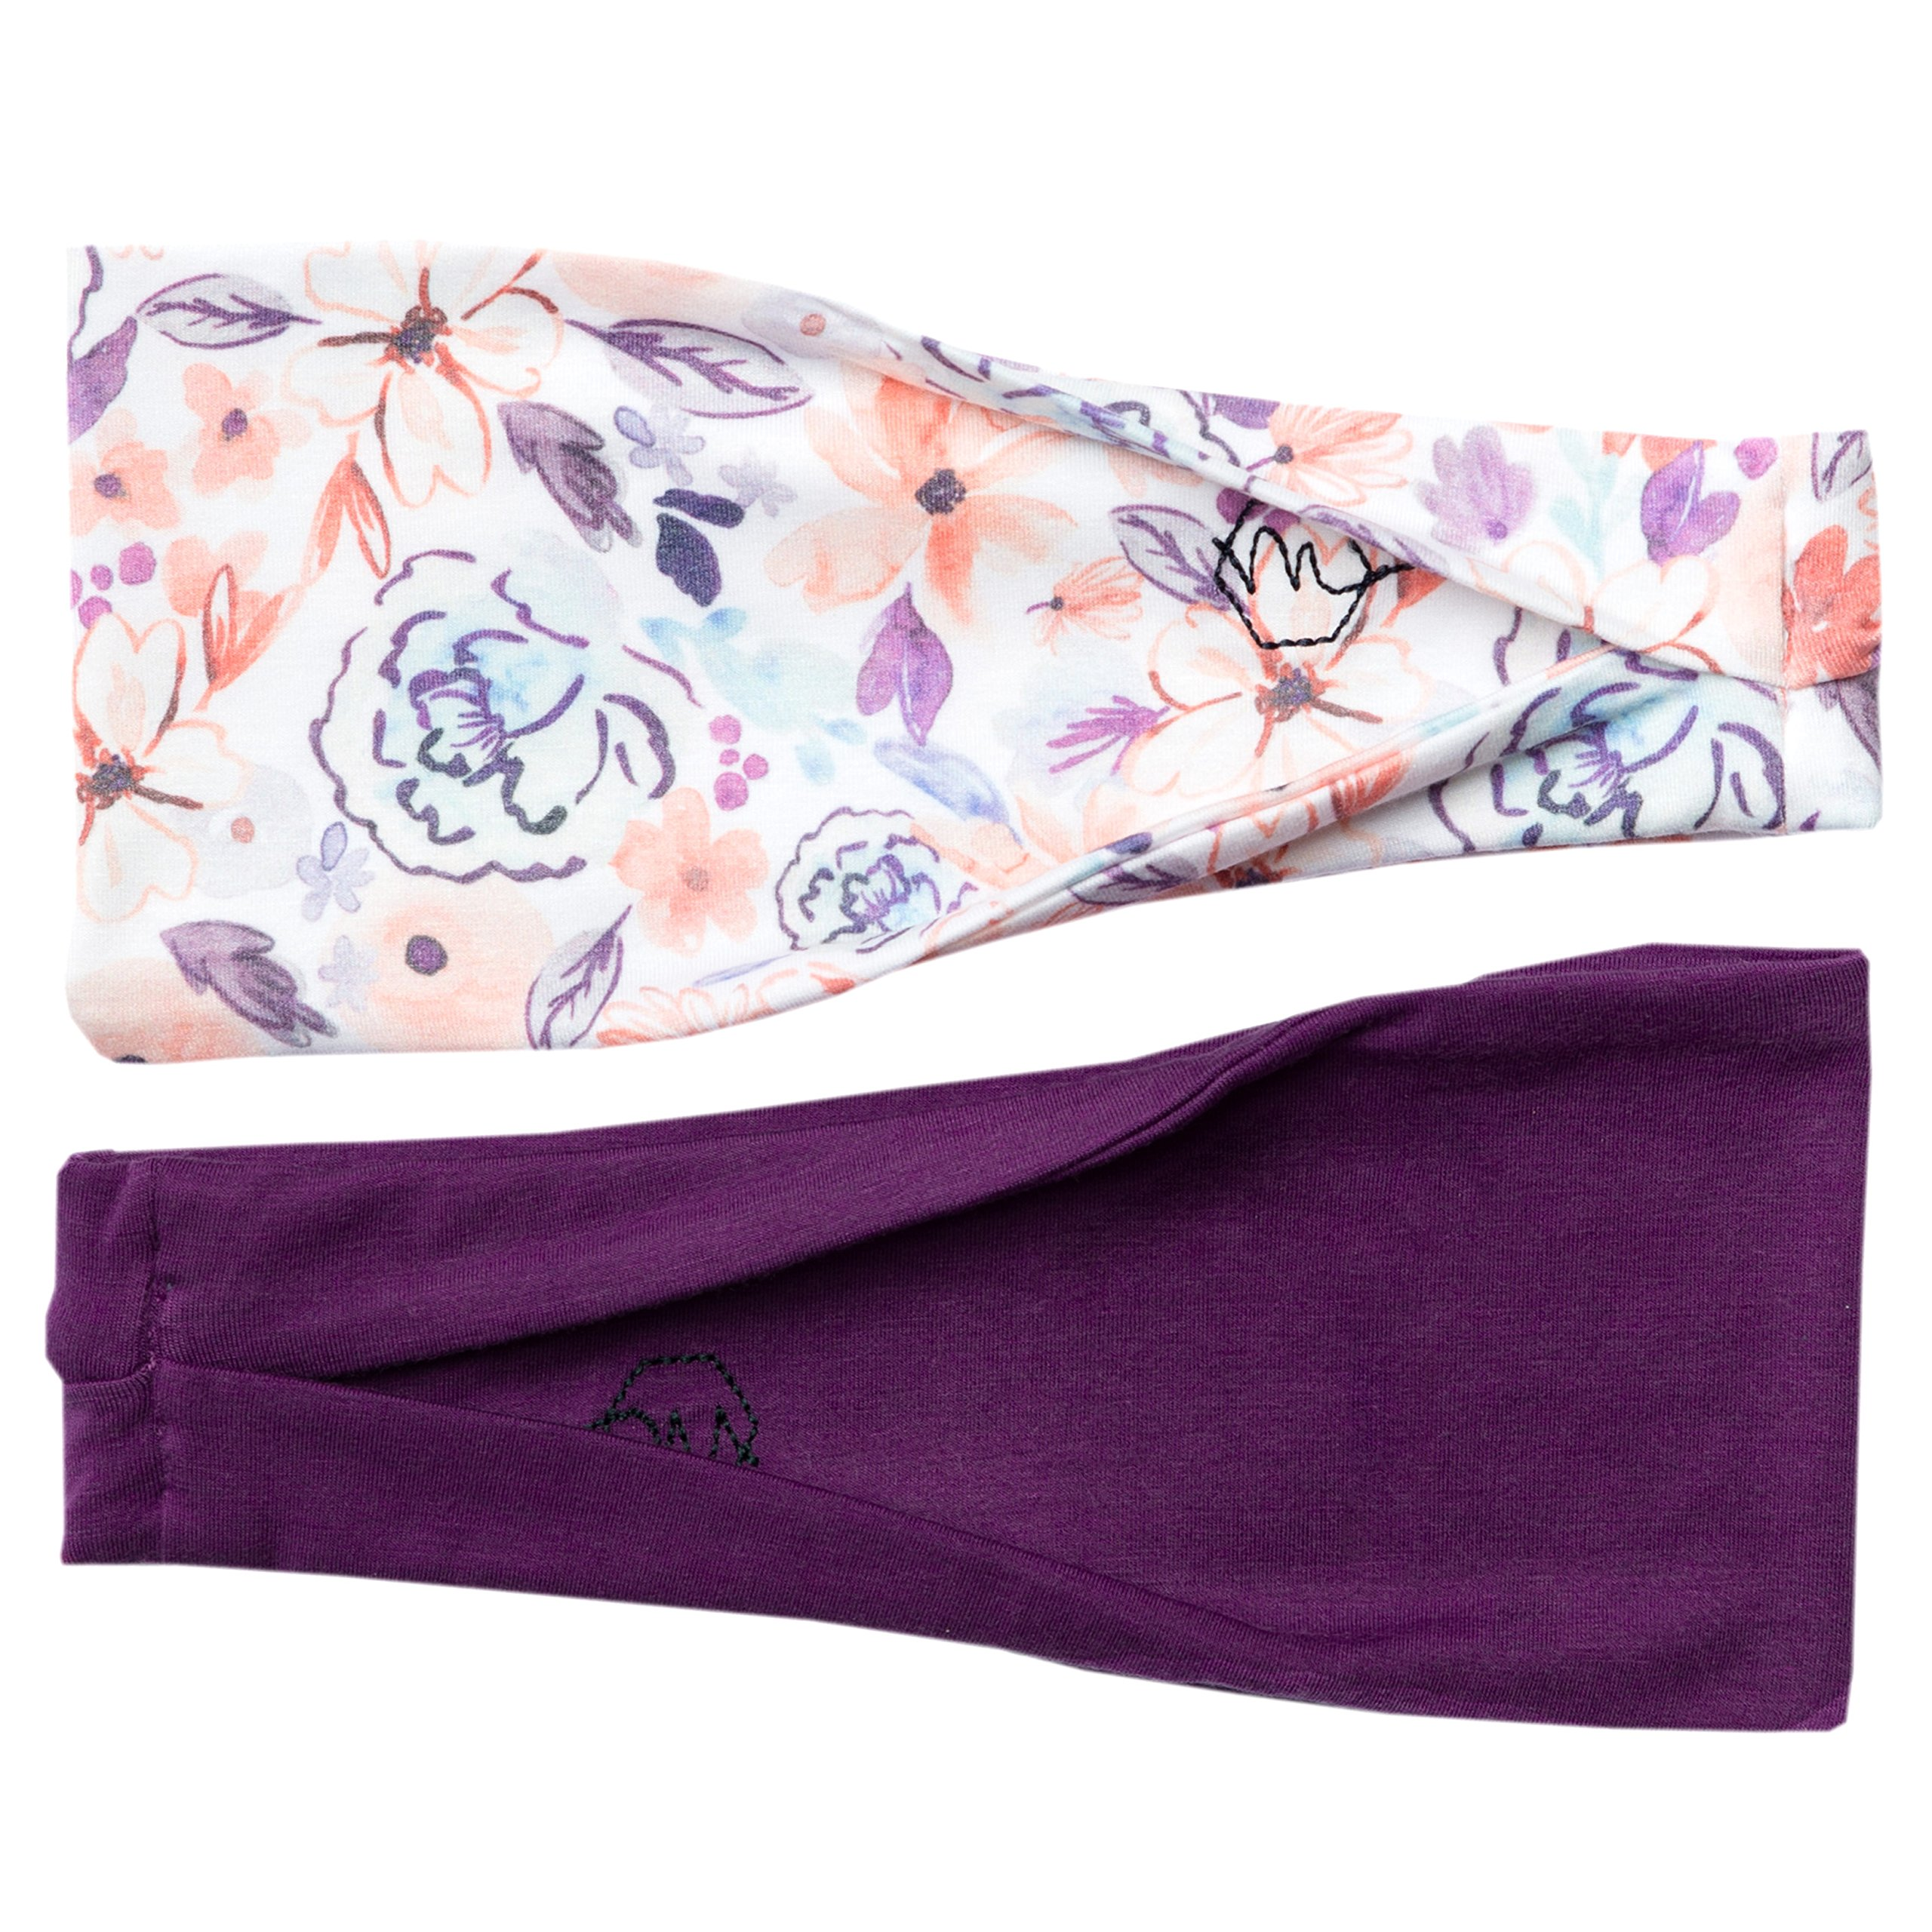 Maven Thread Women's Headband Yoga Running Exercise Sports Workout Athletic Gym Wide Sweat Wicking Stretchy No Slip 2 Pack Set Plum Purple Floral ASANA